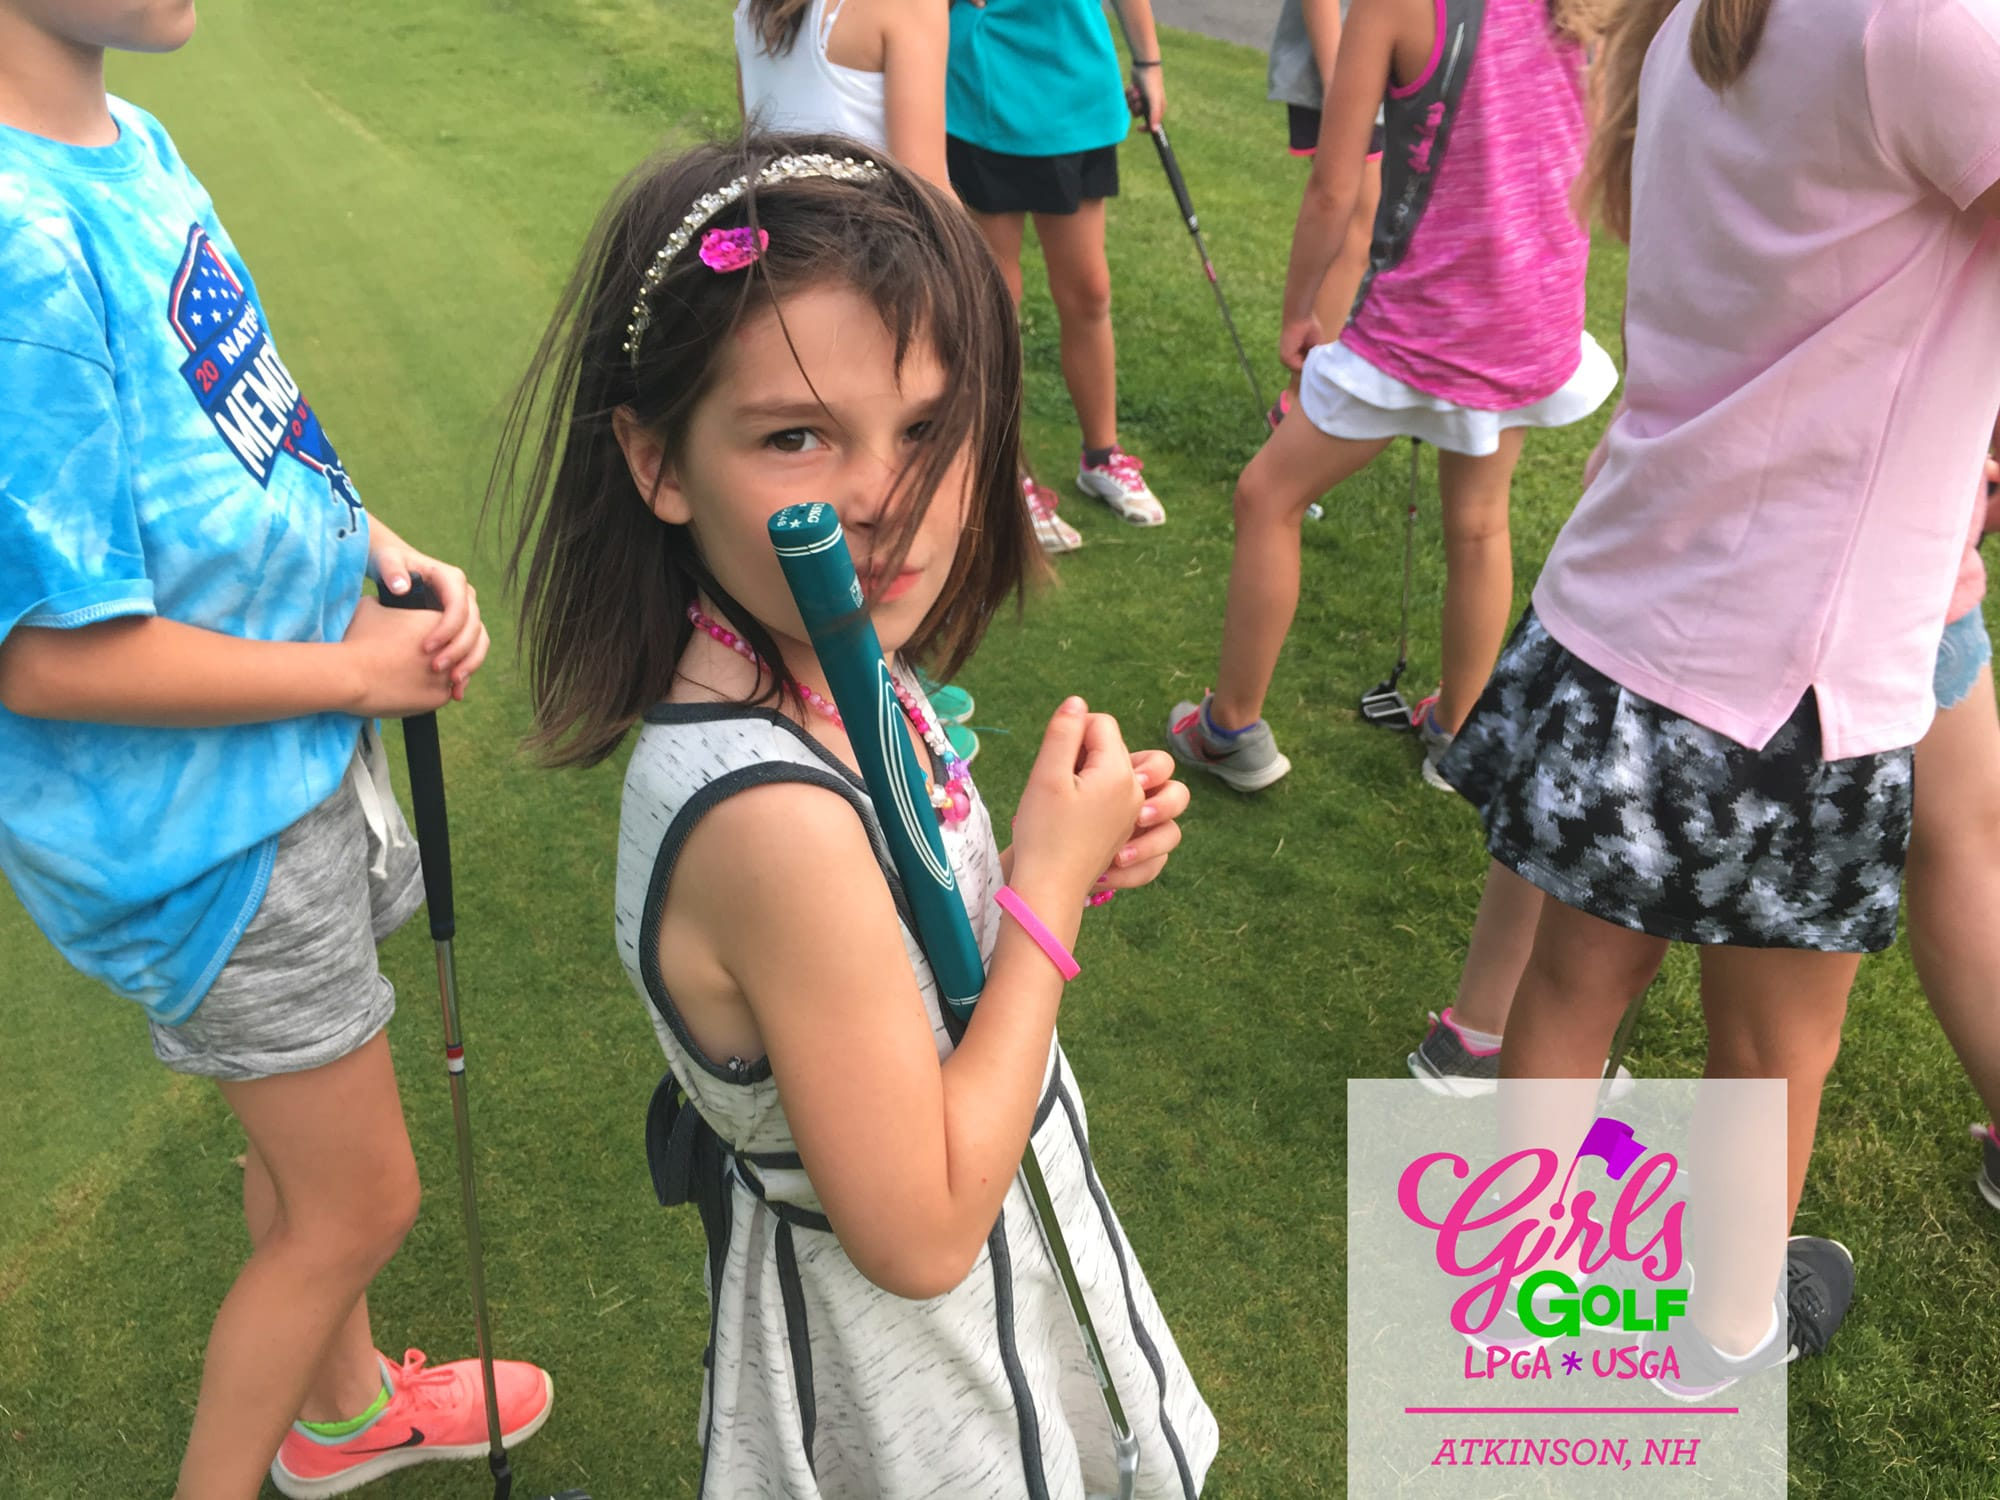 GirlsGolf-Riley